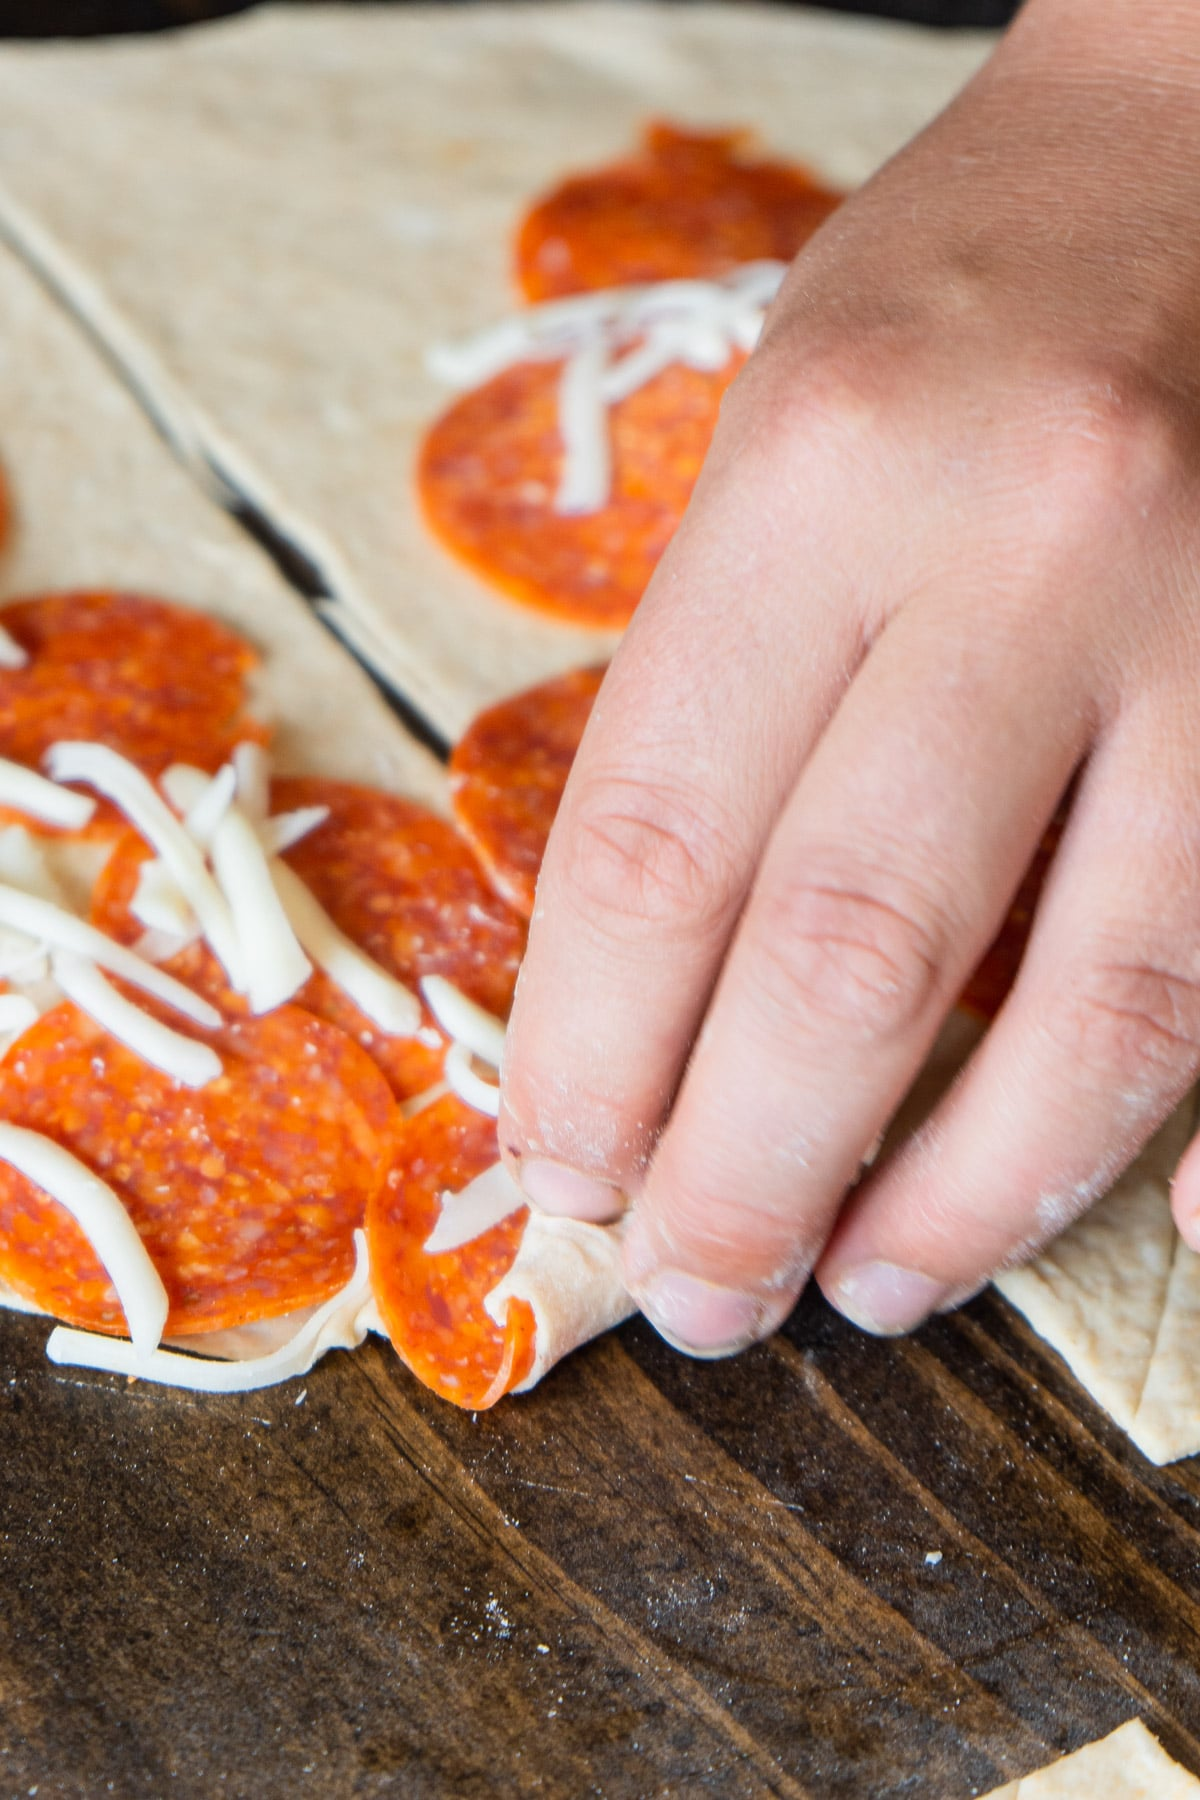 Woman's hand rolling up pepperoni rolls